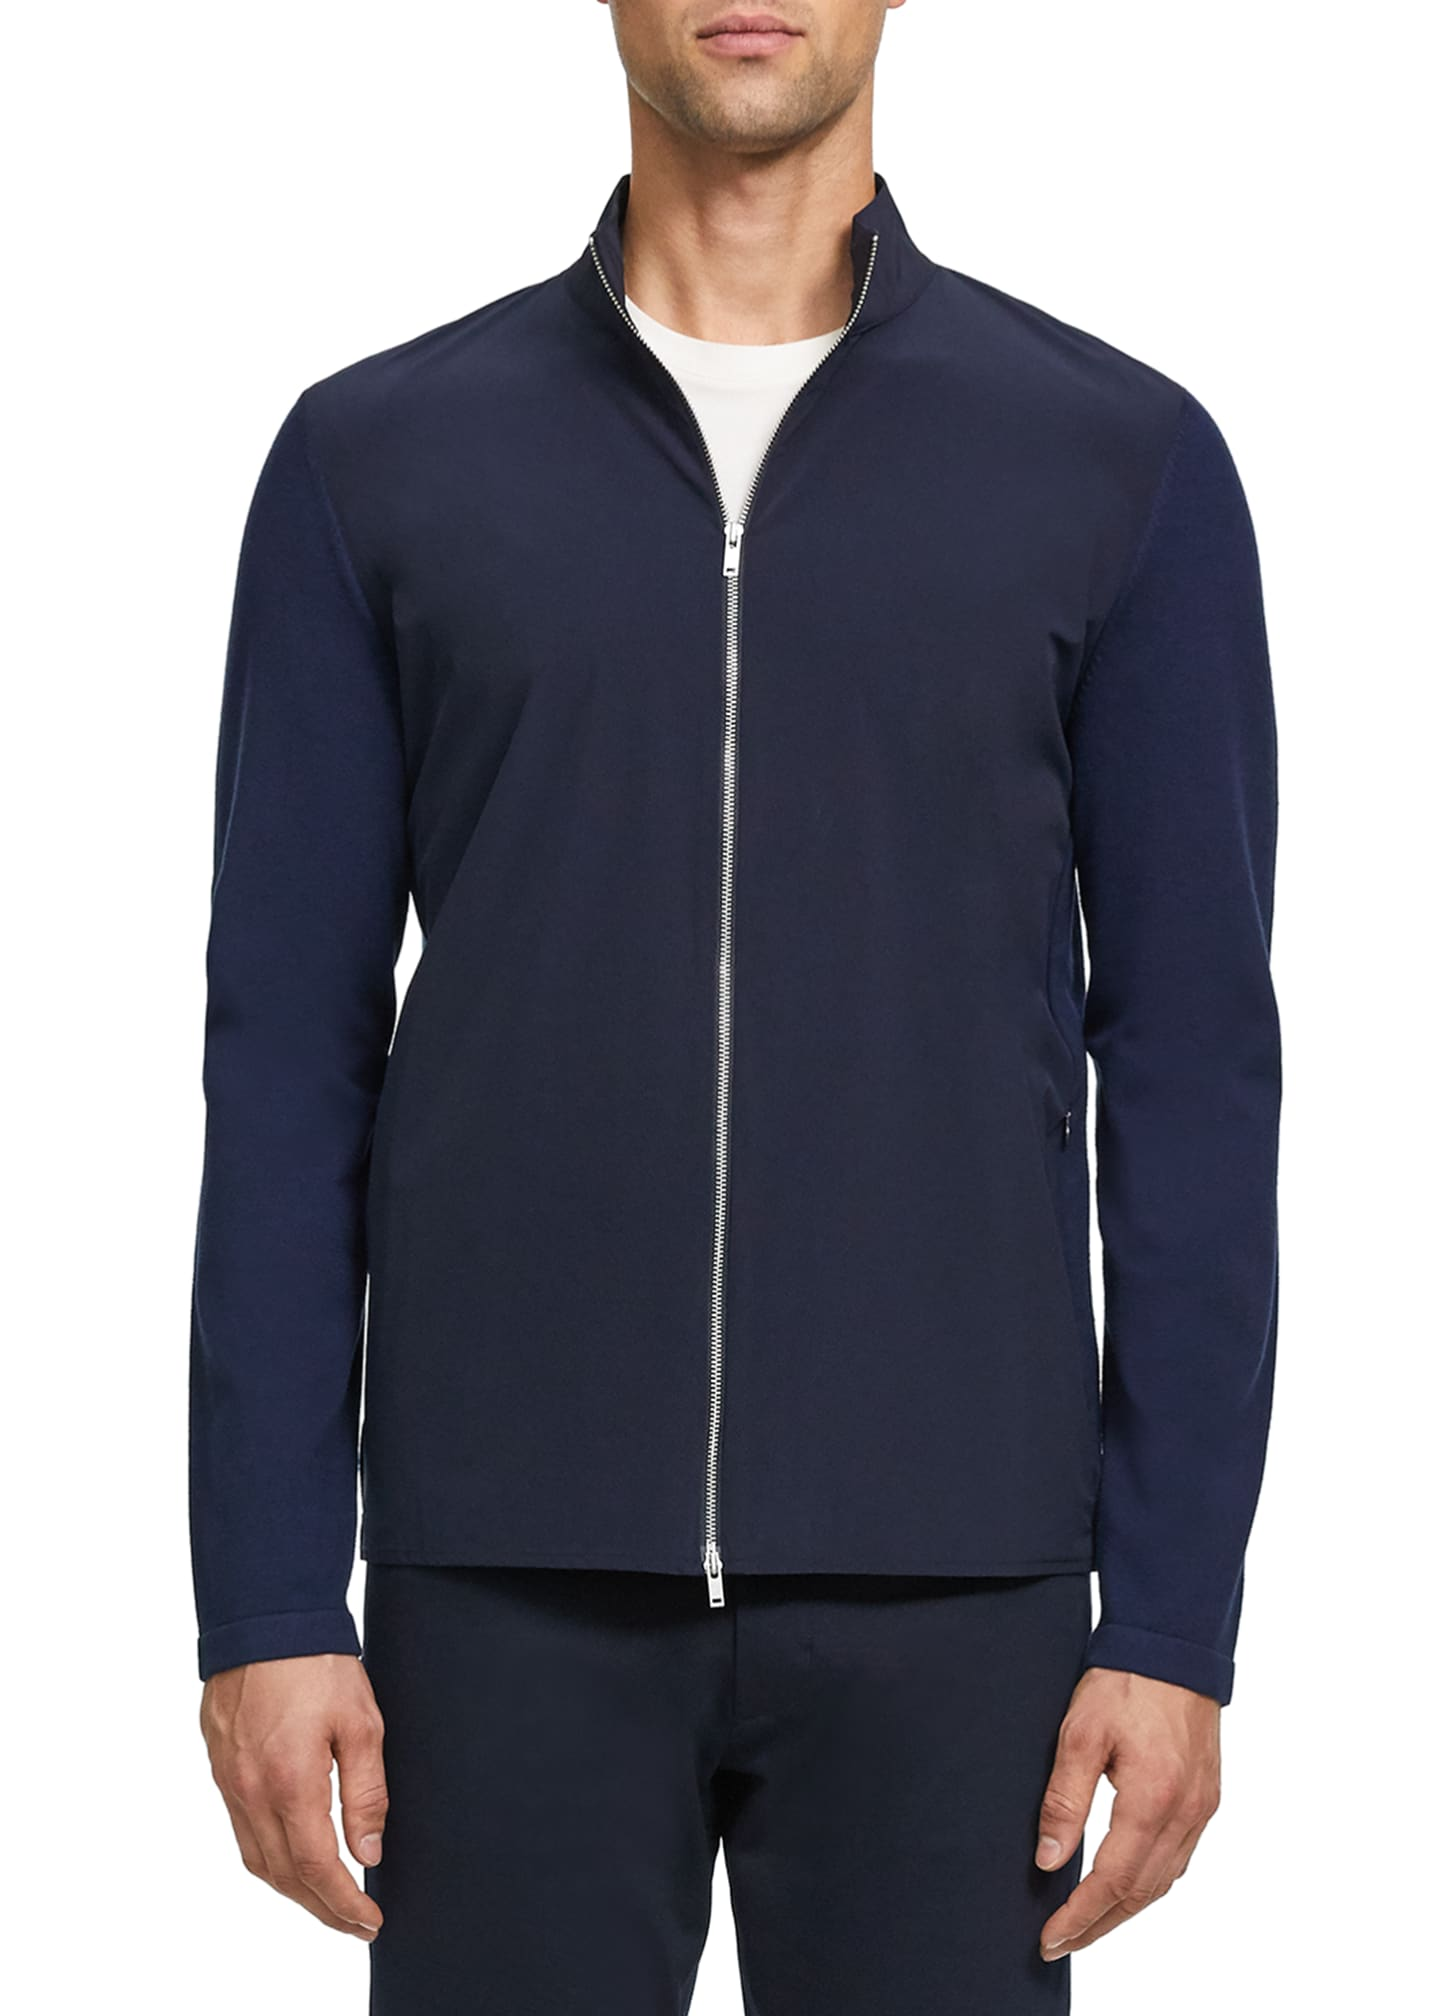 Image 1 of 3: Men's Bellvil Fine Bilen Sweater Jacket